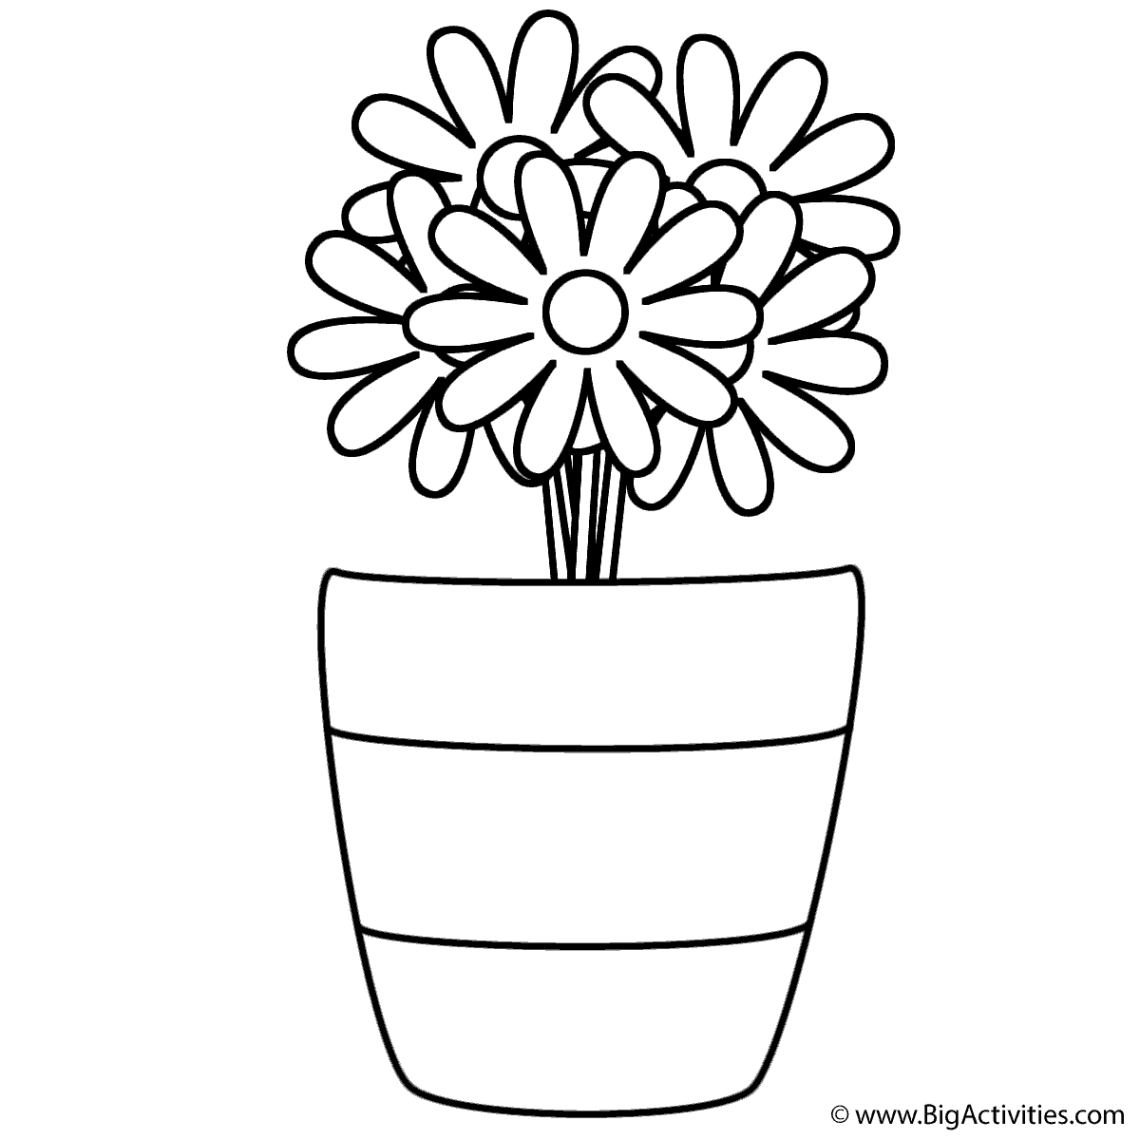 Flowers in Vase with Stripes - Coloring Page (Plants) | colouring pages flowers in a vase